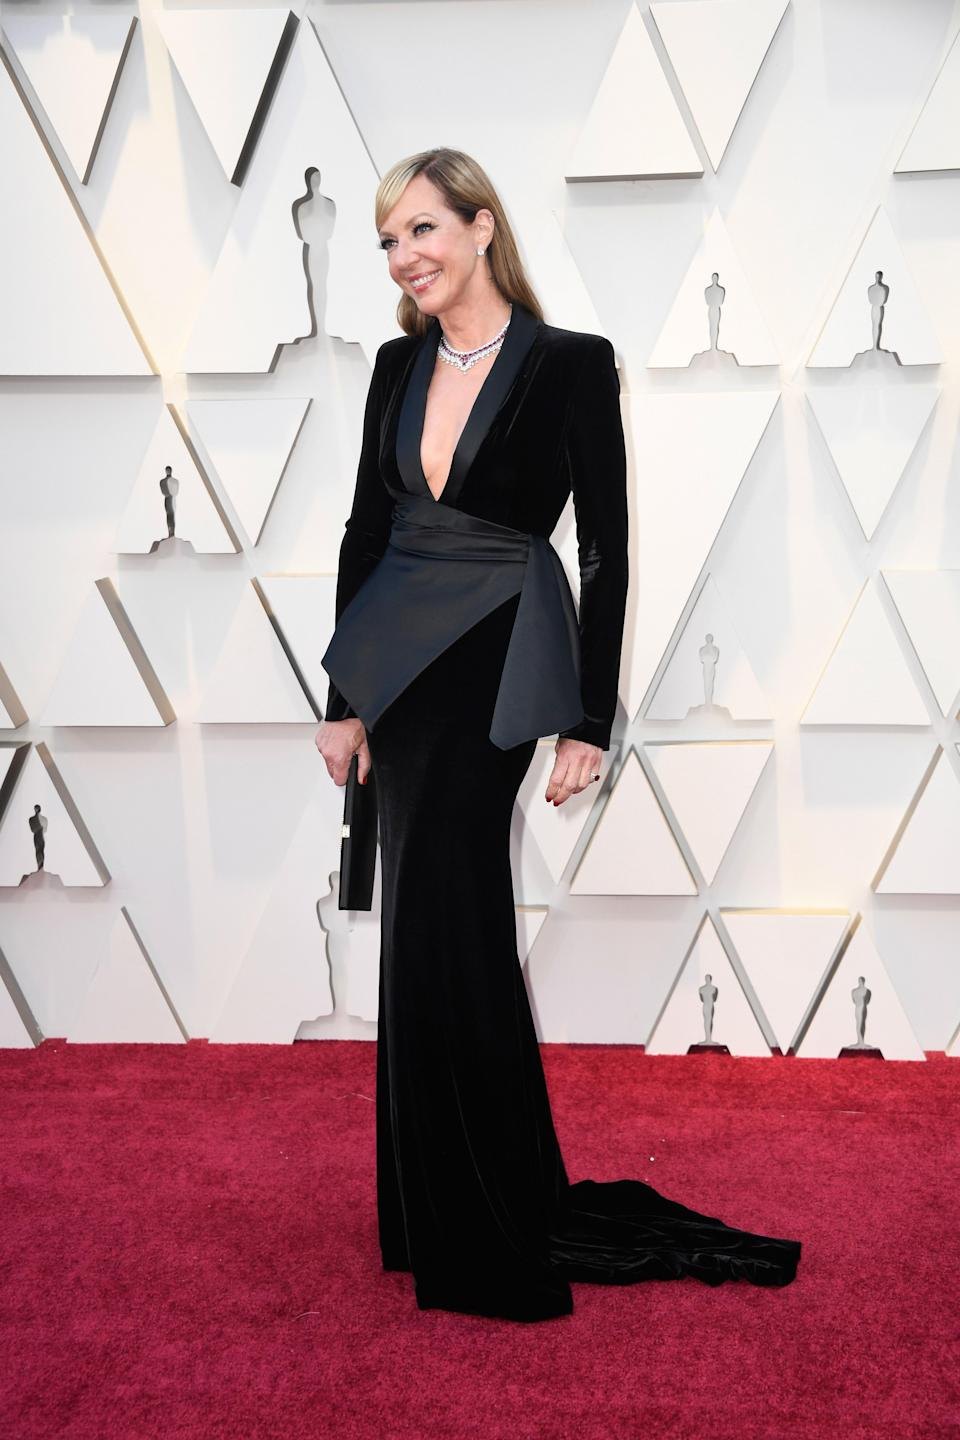 Allison Janney in Pamella Roland and Chopard jewelry with a Roger Vivier bag